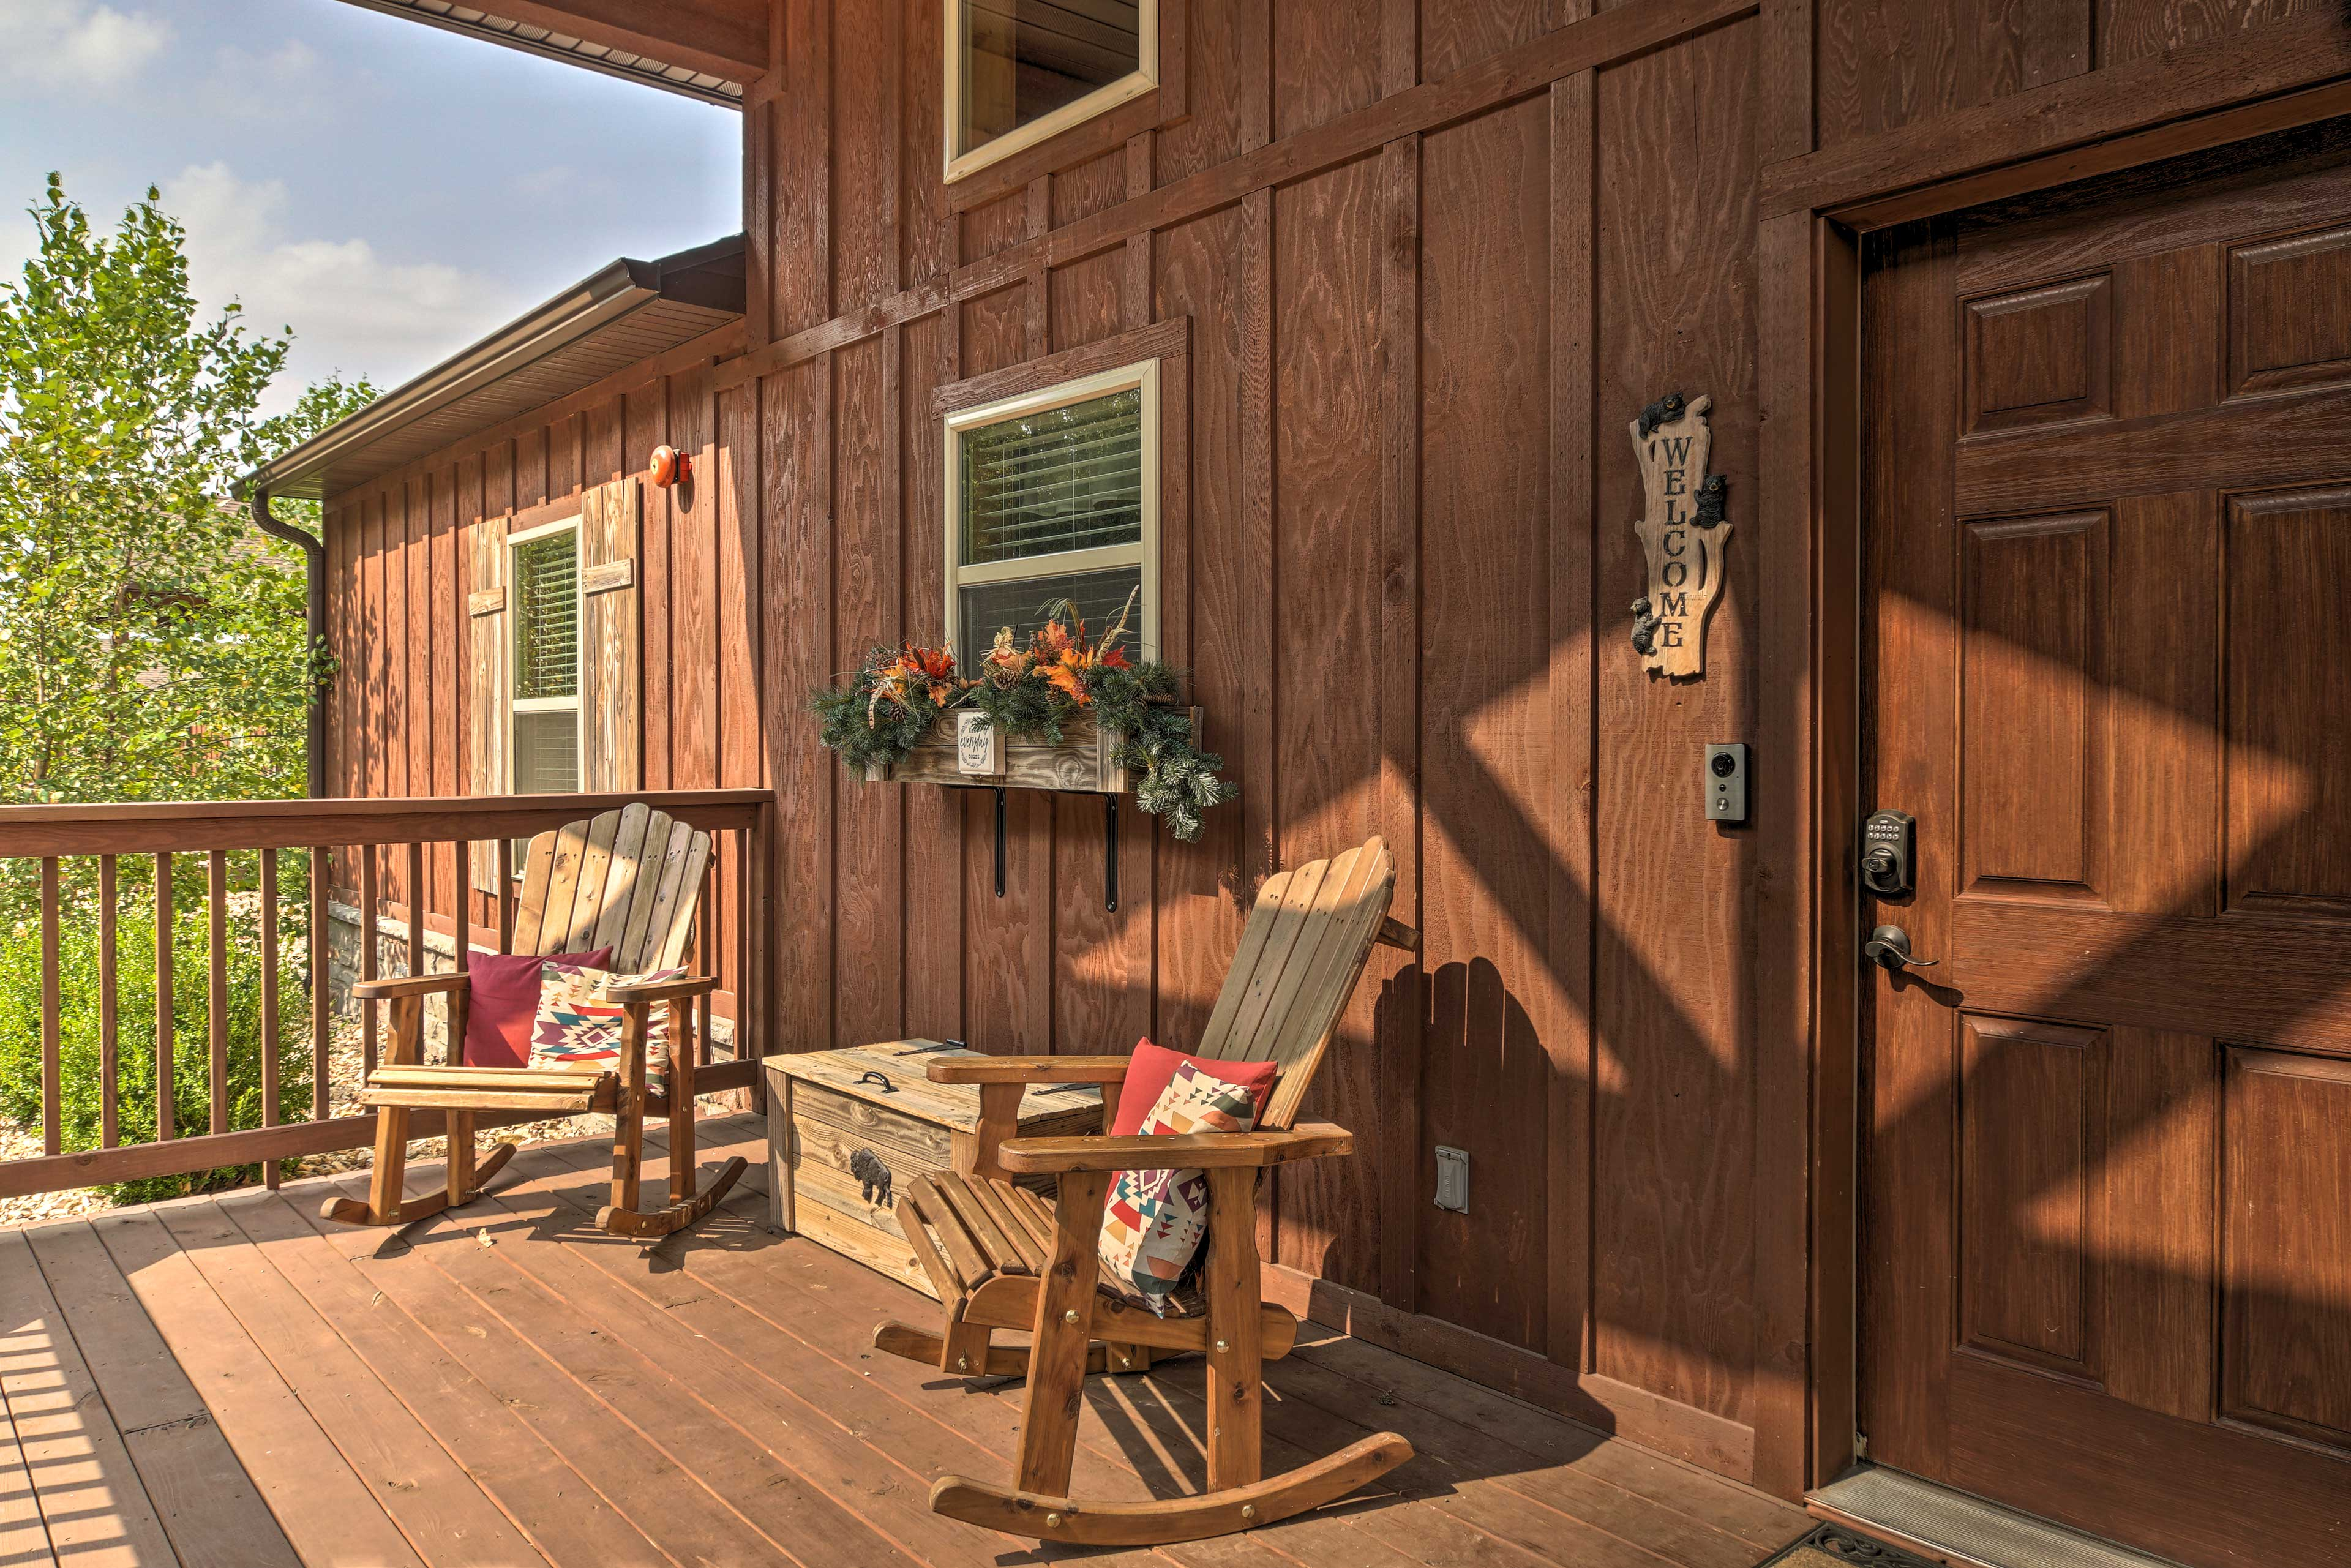 Furnished Porch   Keyless Entry   Step-Free Access